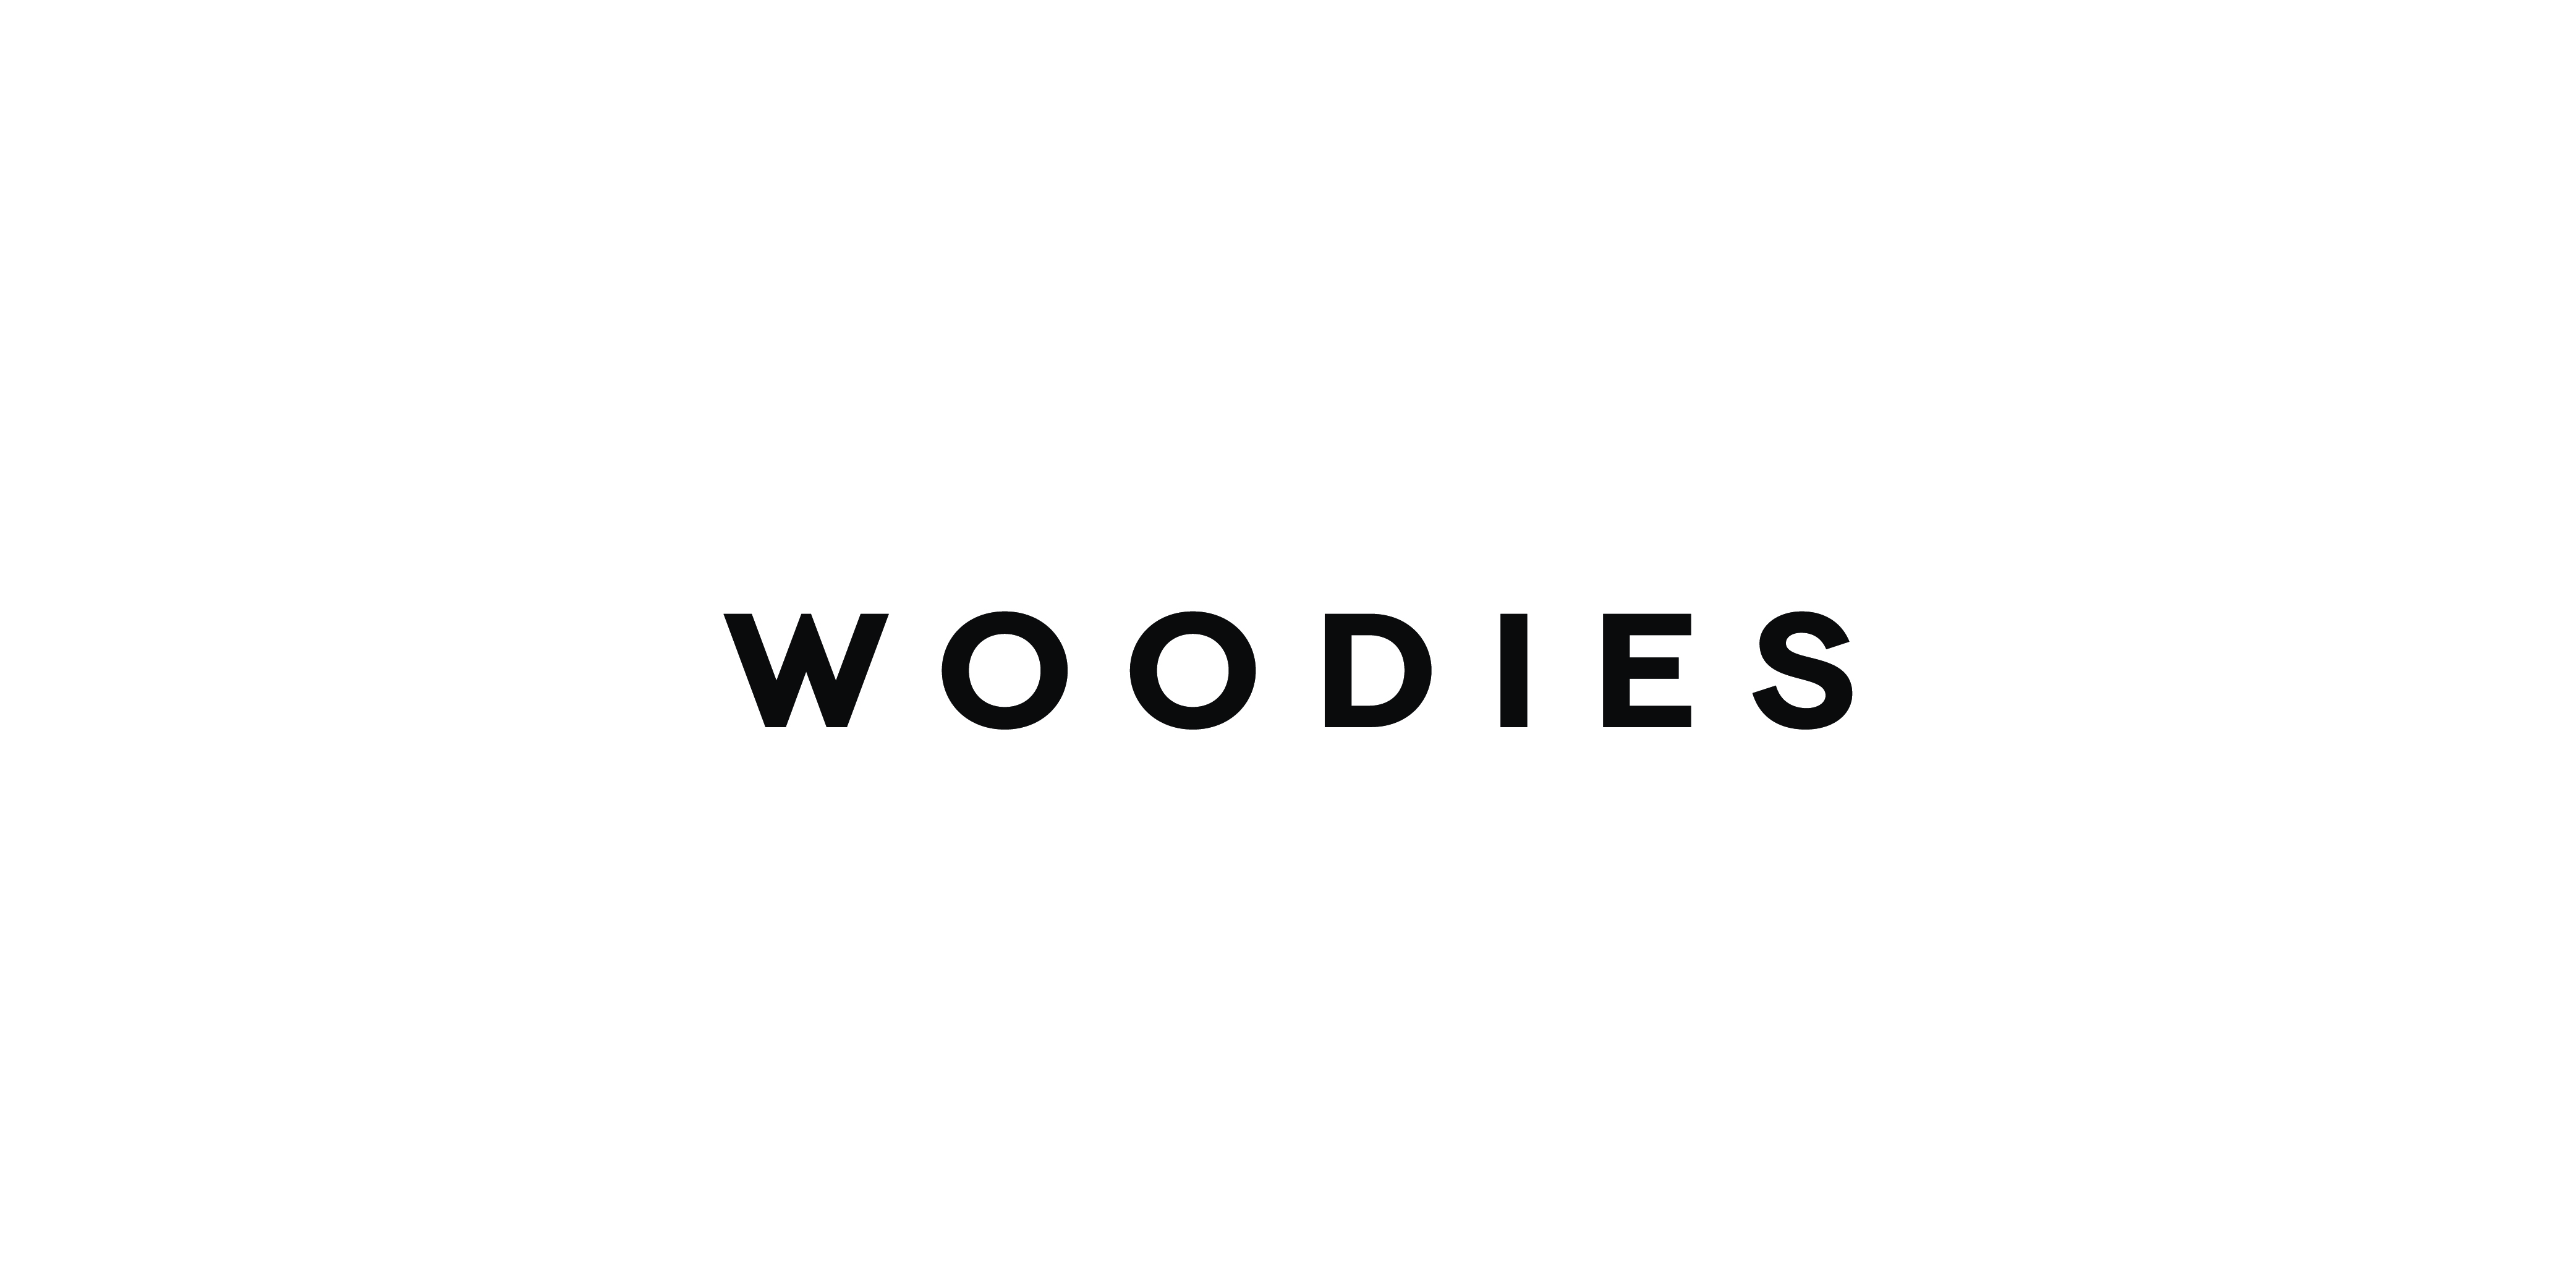 Woodies - Marek Kříž